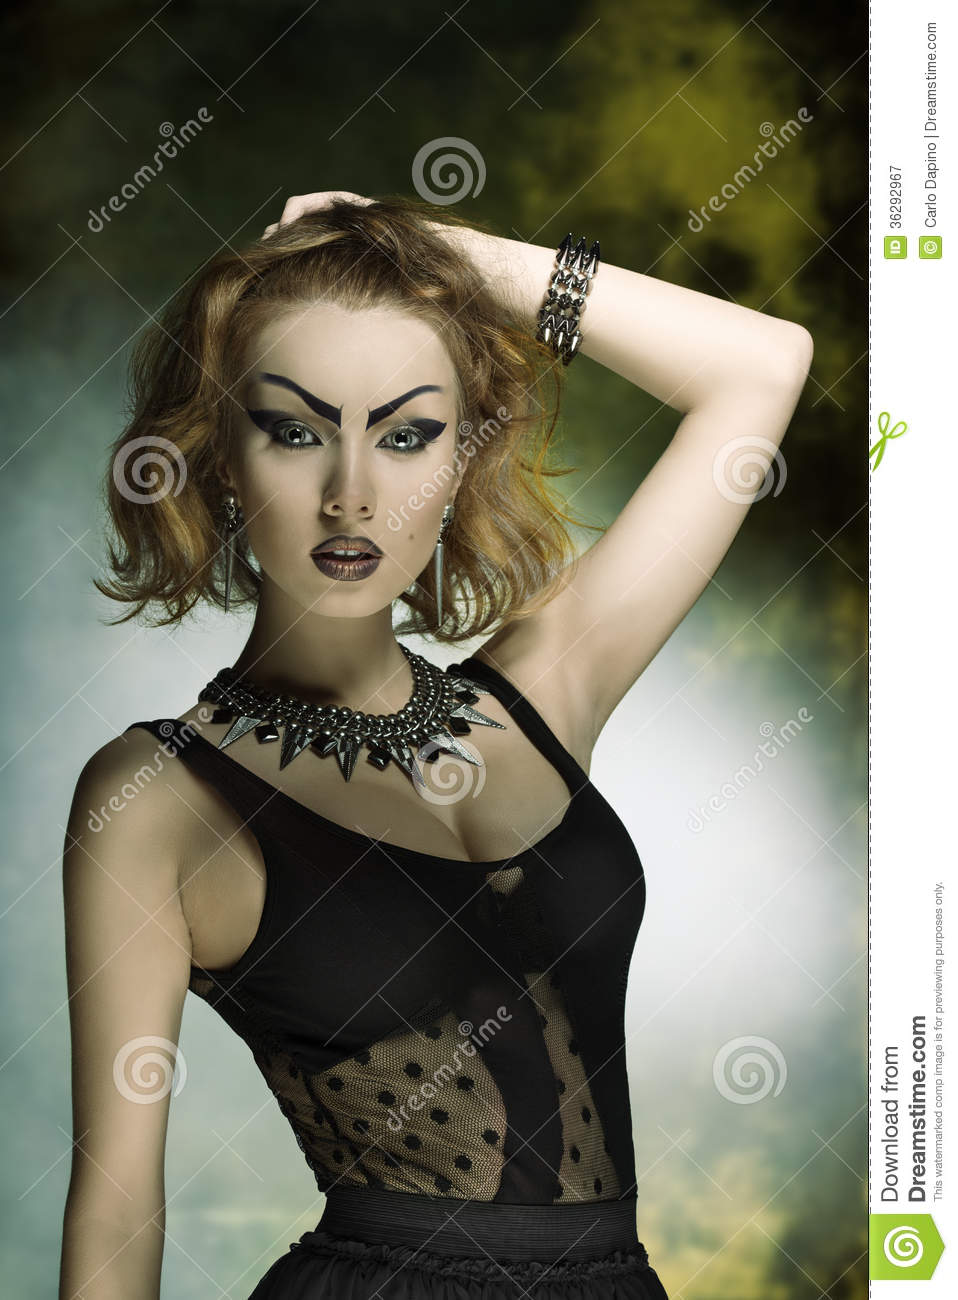 Fashion Woman With Bizarre Style Stock Image - Image of